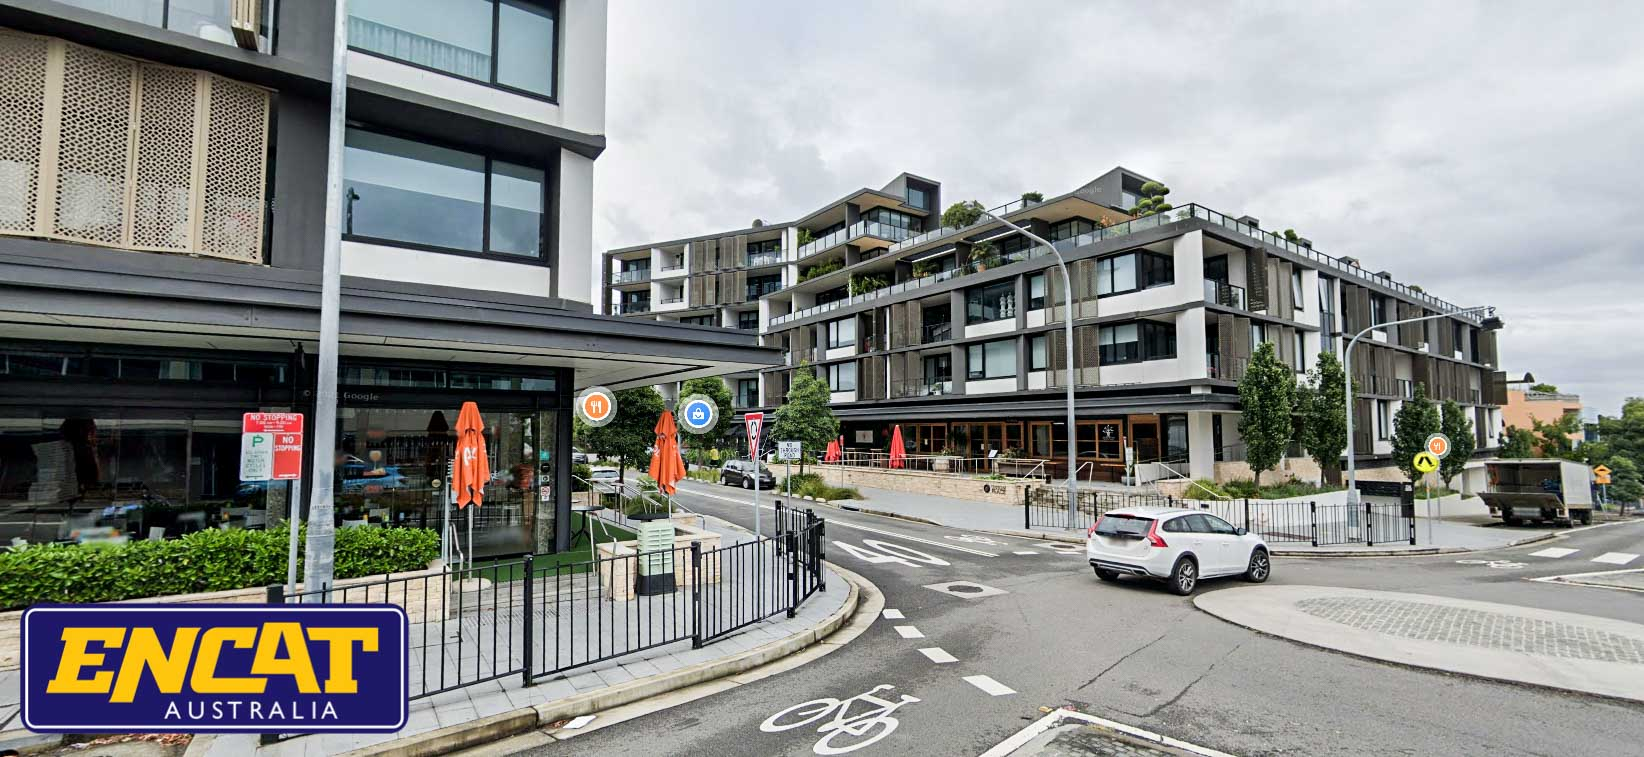 ENCAT RMS Type 2 Pedestrian Fence installed on a verge in Rozelle NSW shopping area and roundabout